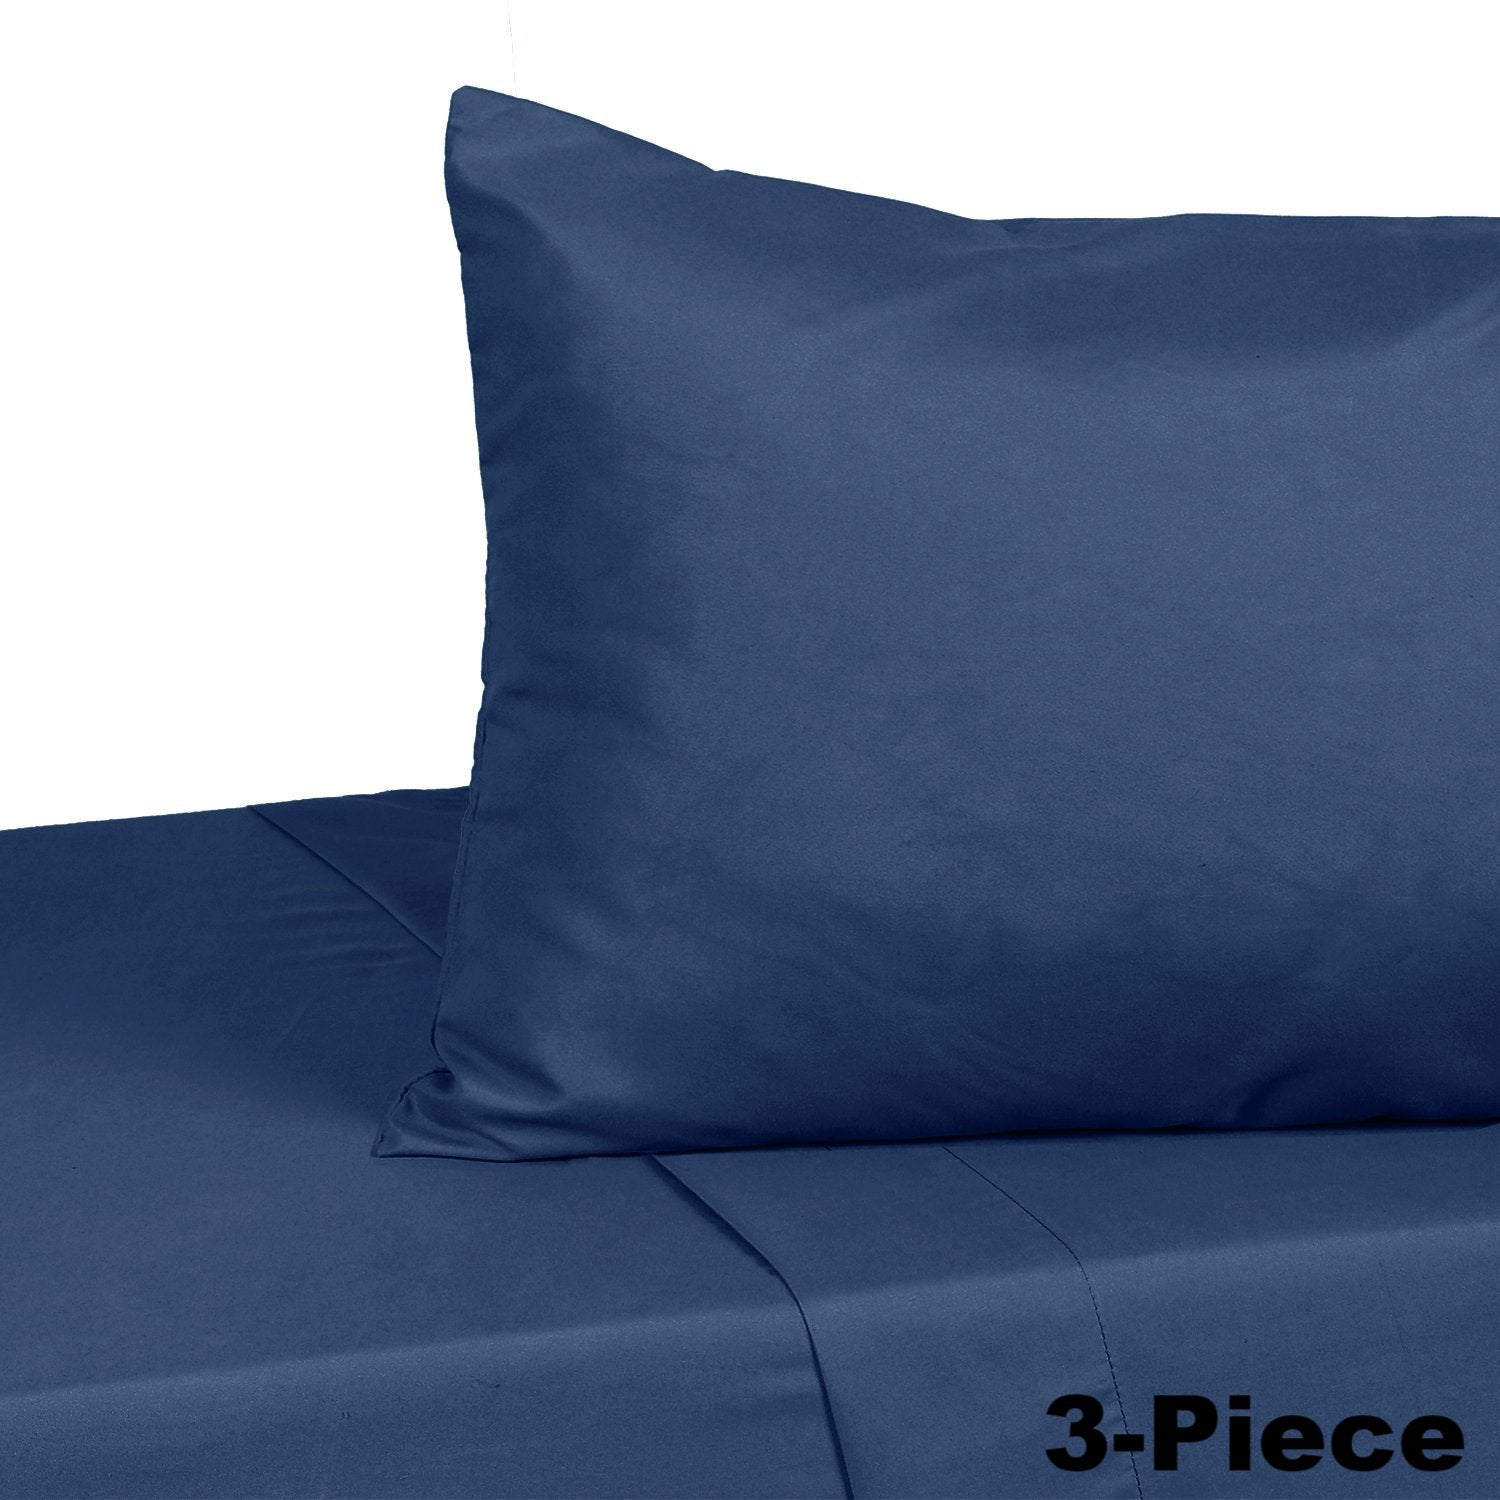 OUT OF STOCK - Soft Microfiber Twin Bed Sheets 3-Piece Set - Navy